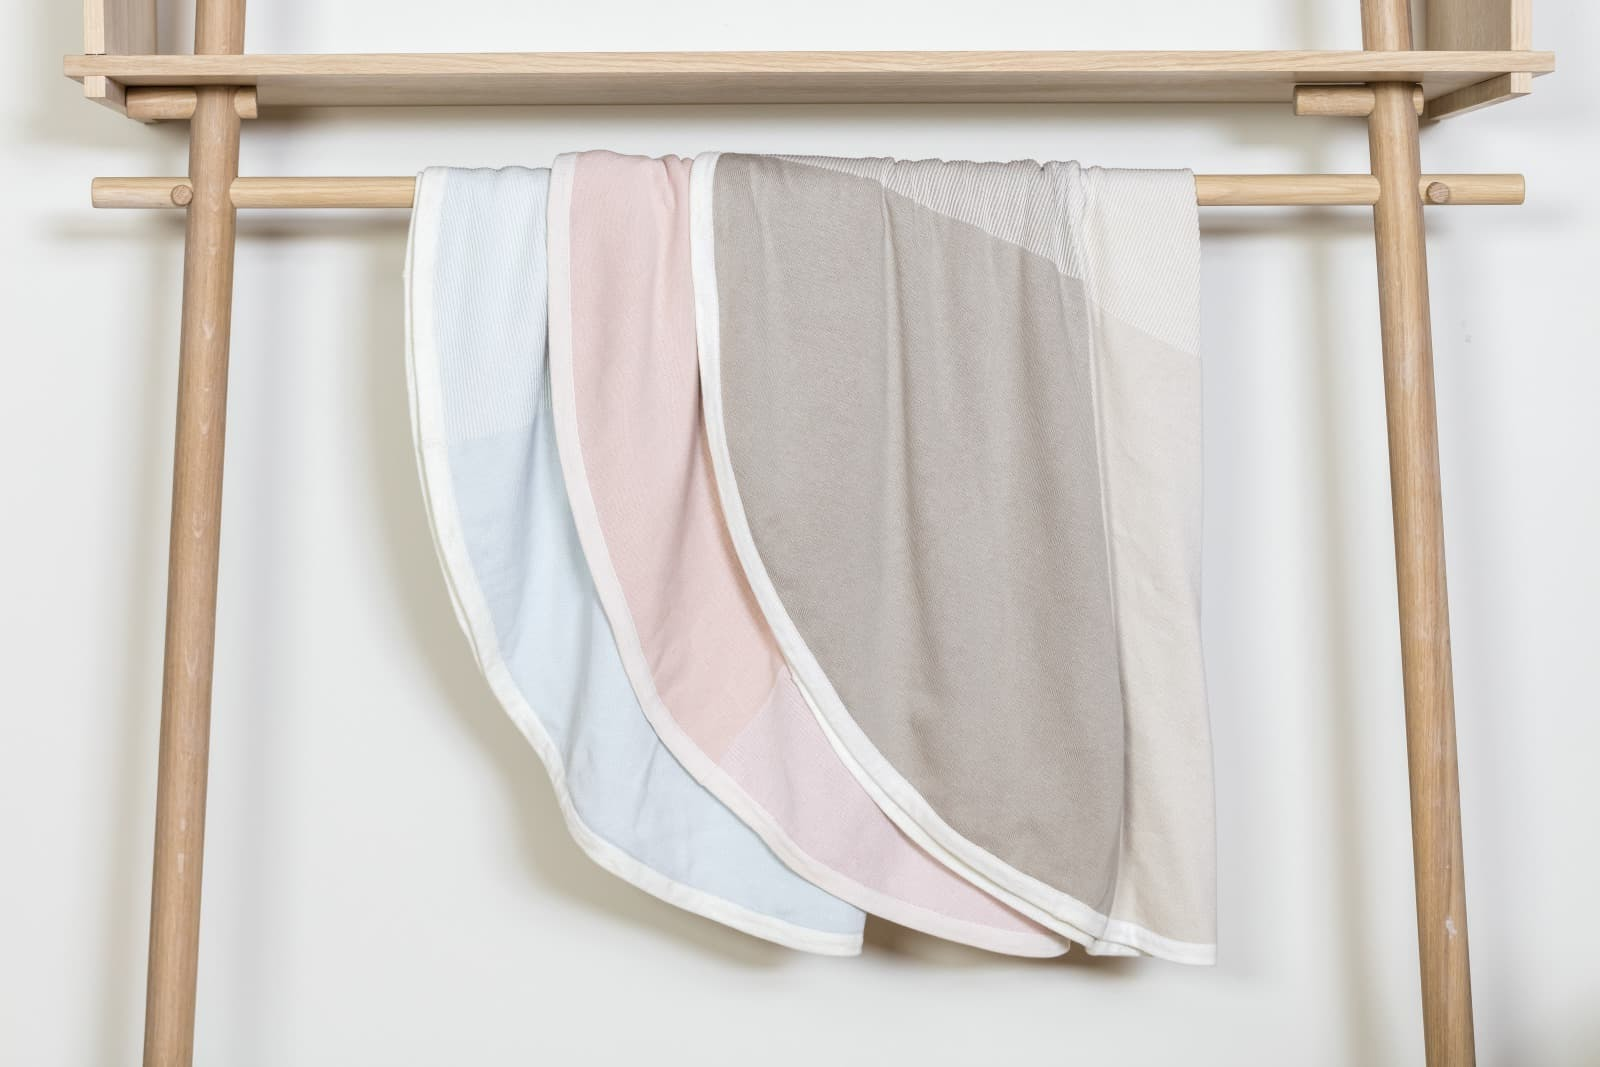 Stokke® Caring Collection. Blanket Cotton Knit. Mint Pink and Beige. Indoor.